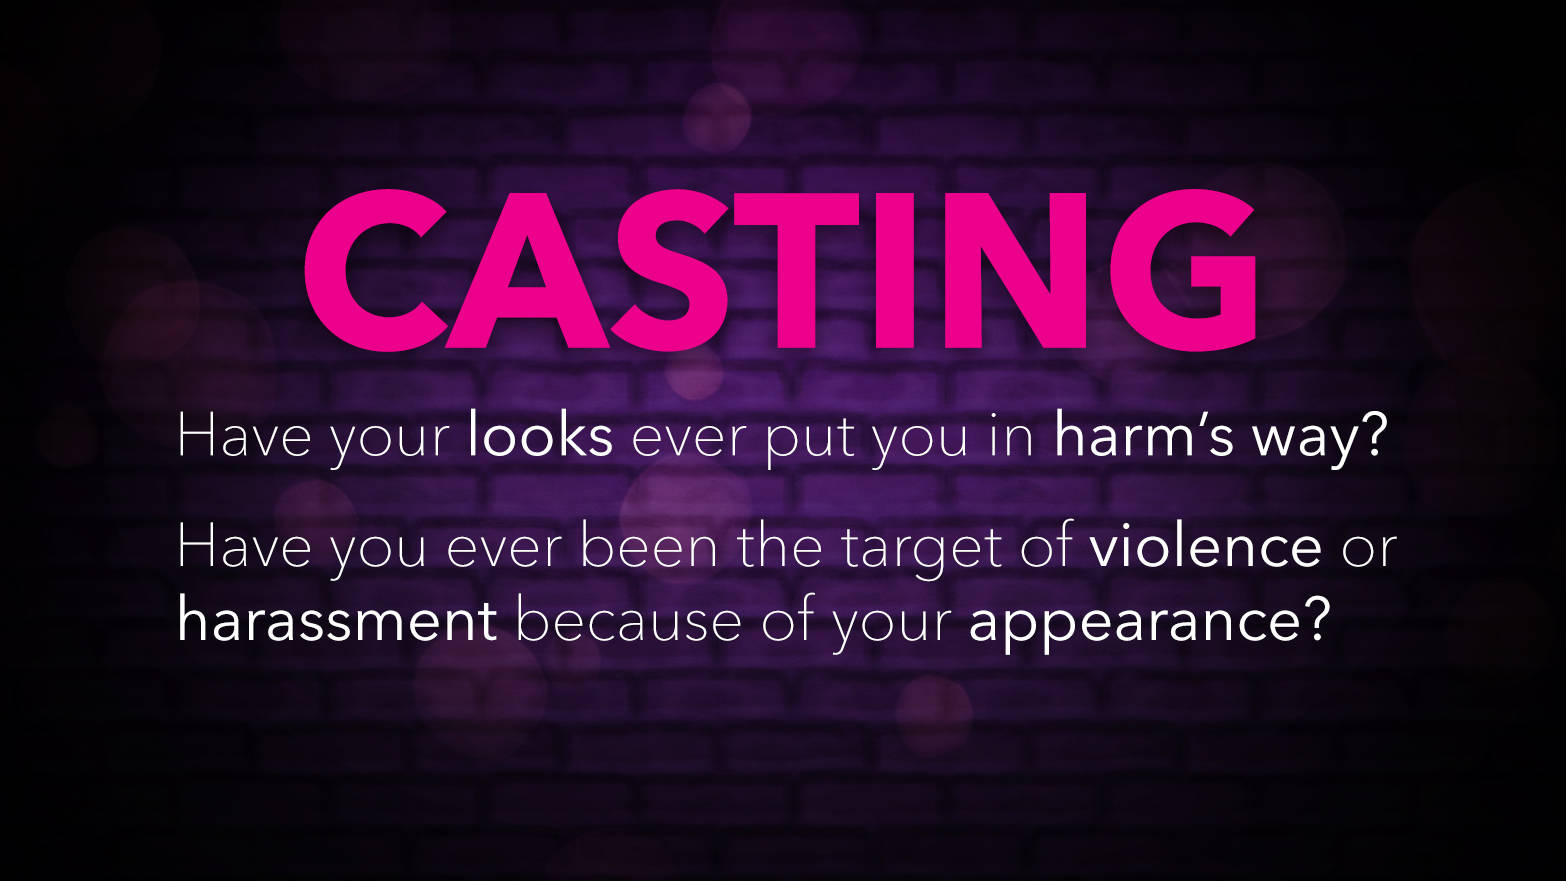 Have your looks ever put you in harm's way? Have you been the target of violence or harassment because of your appearance?